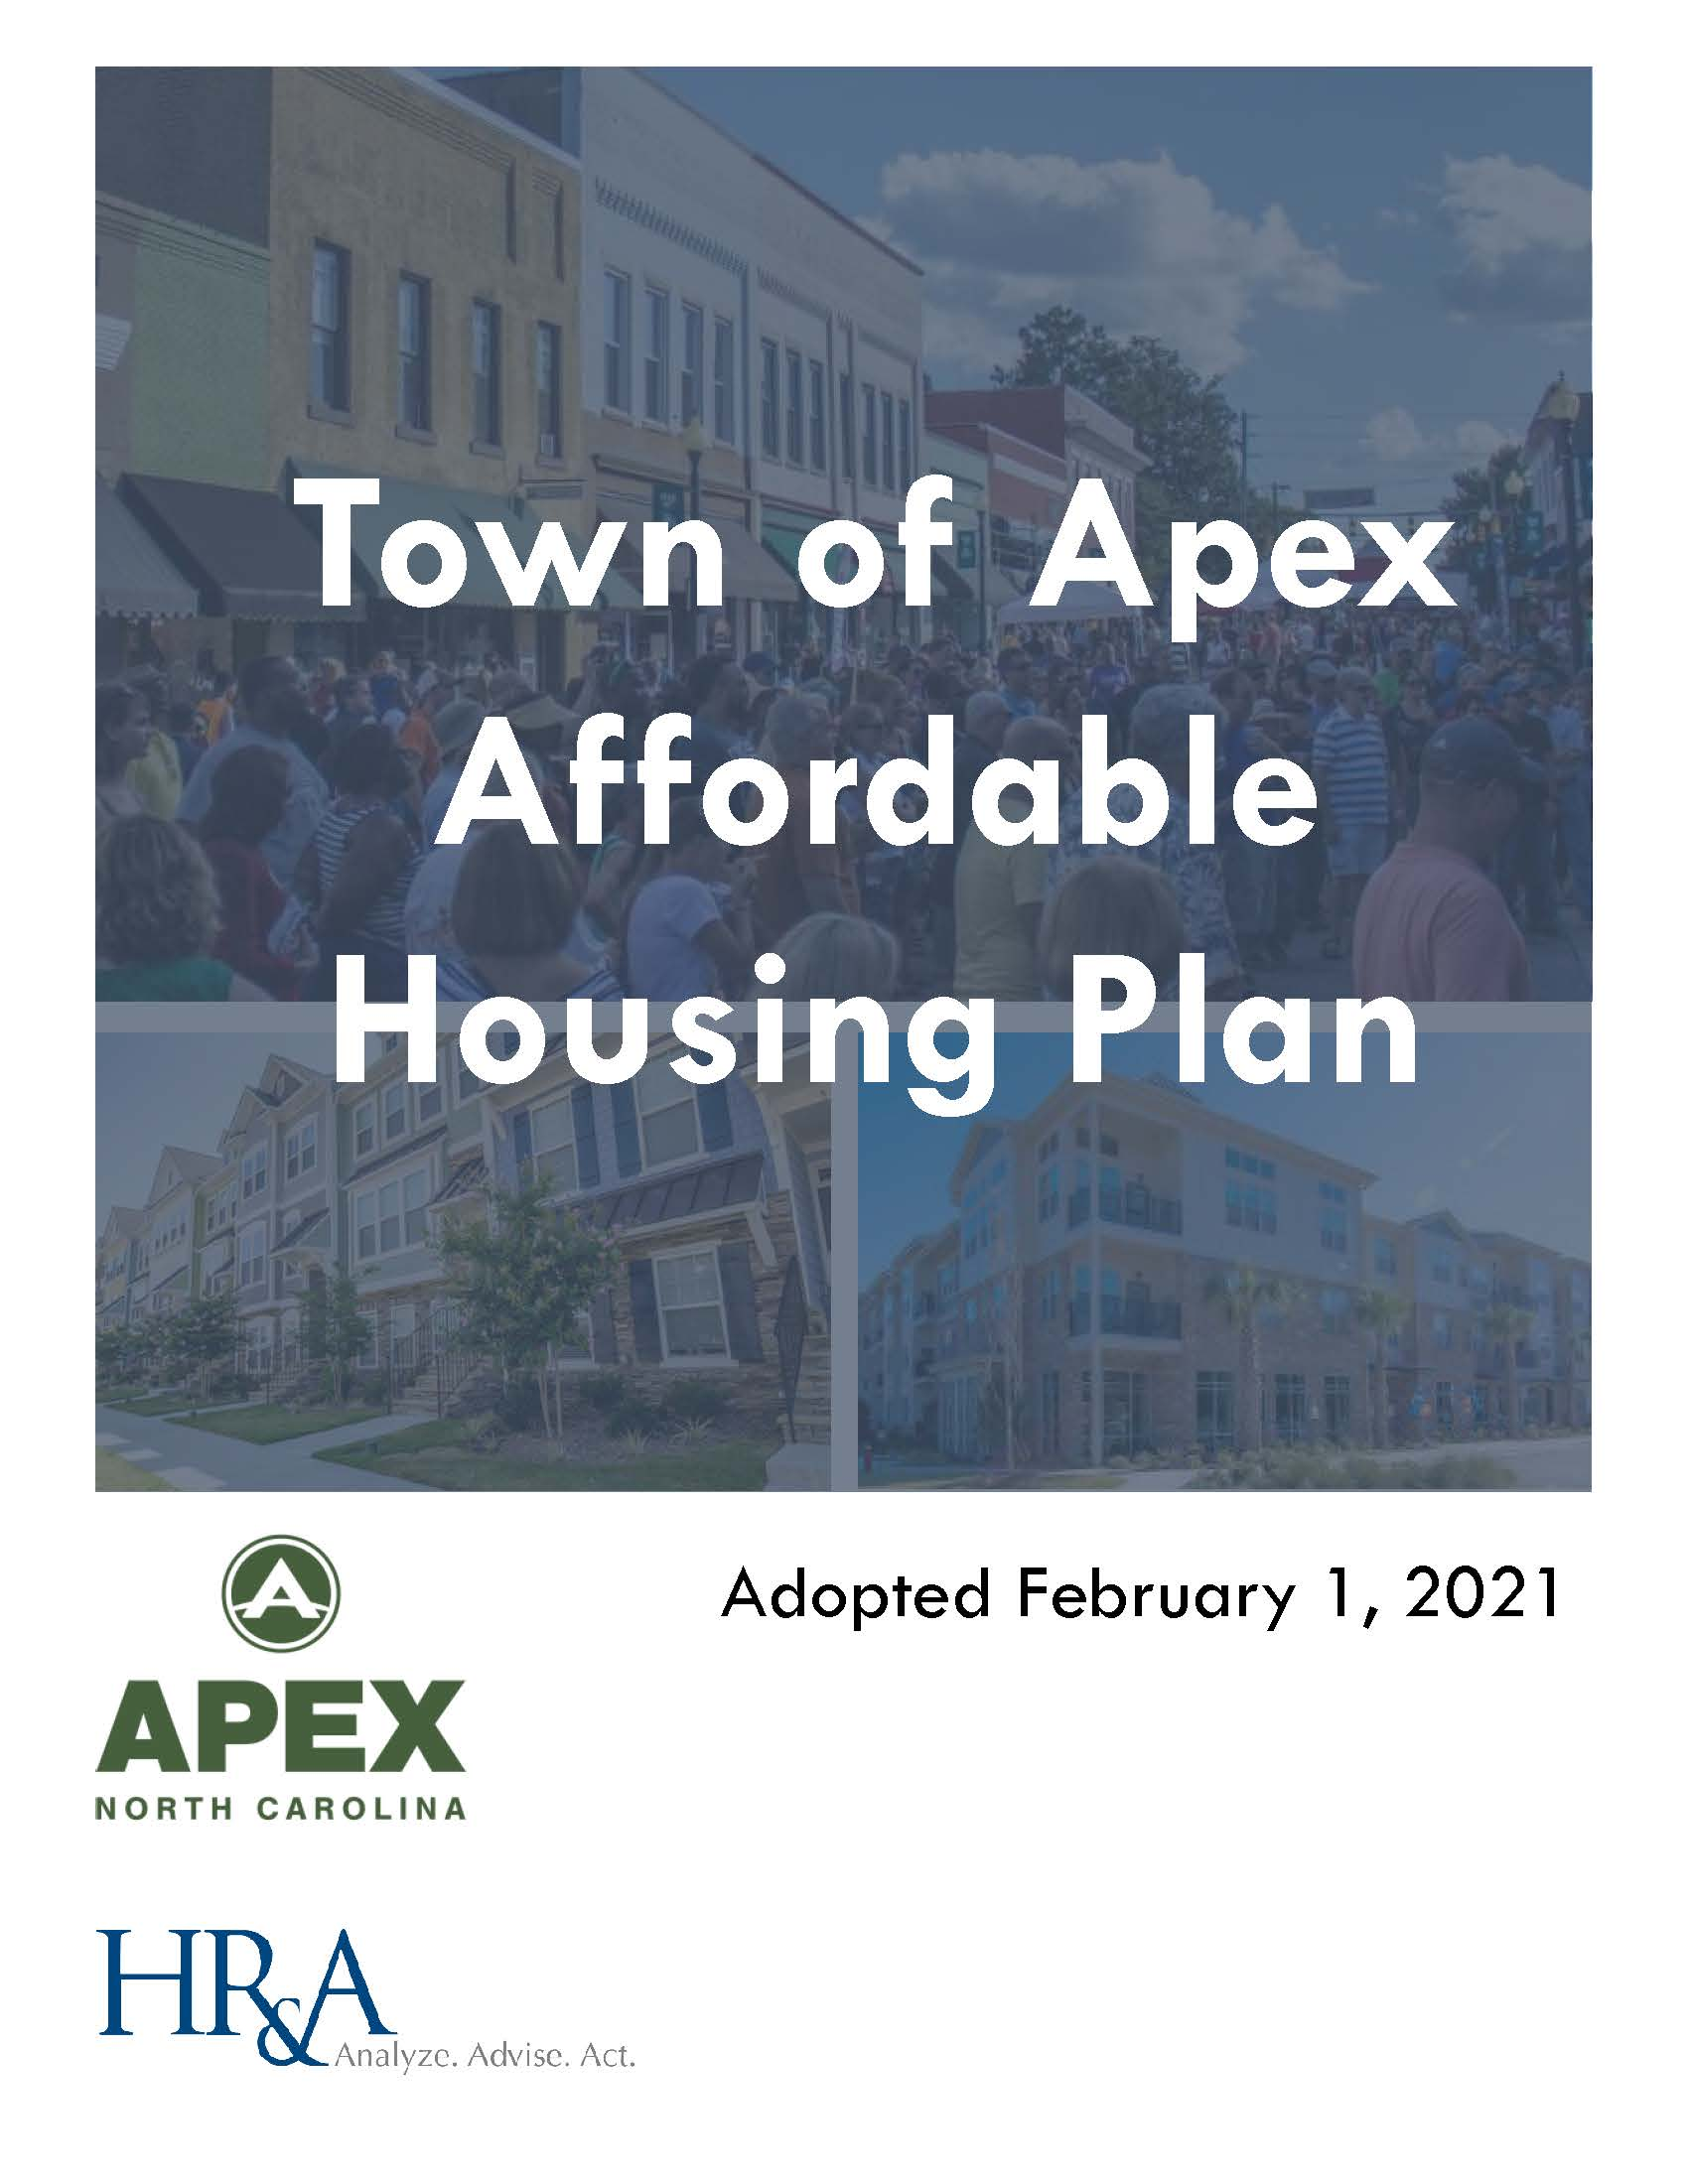 Apex Affordable Housing Plan_Adopted Cover Opens in new window